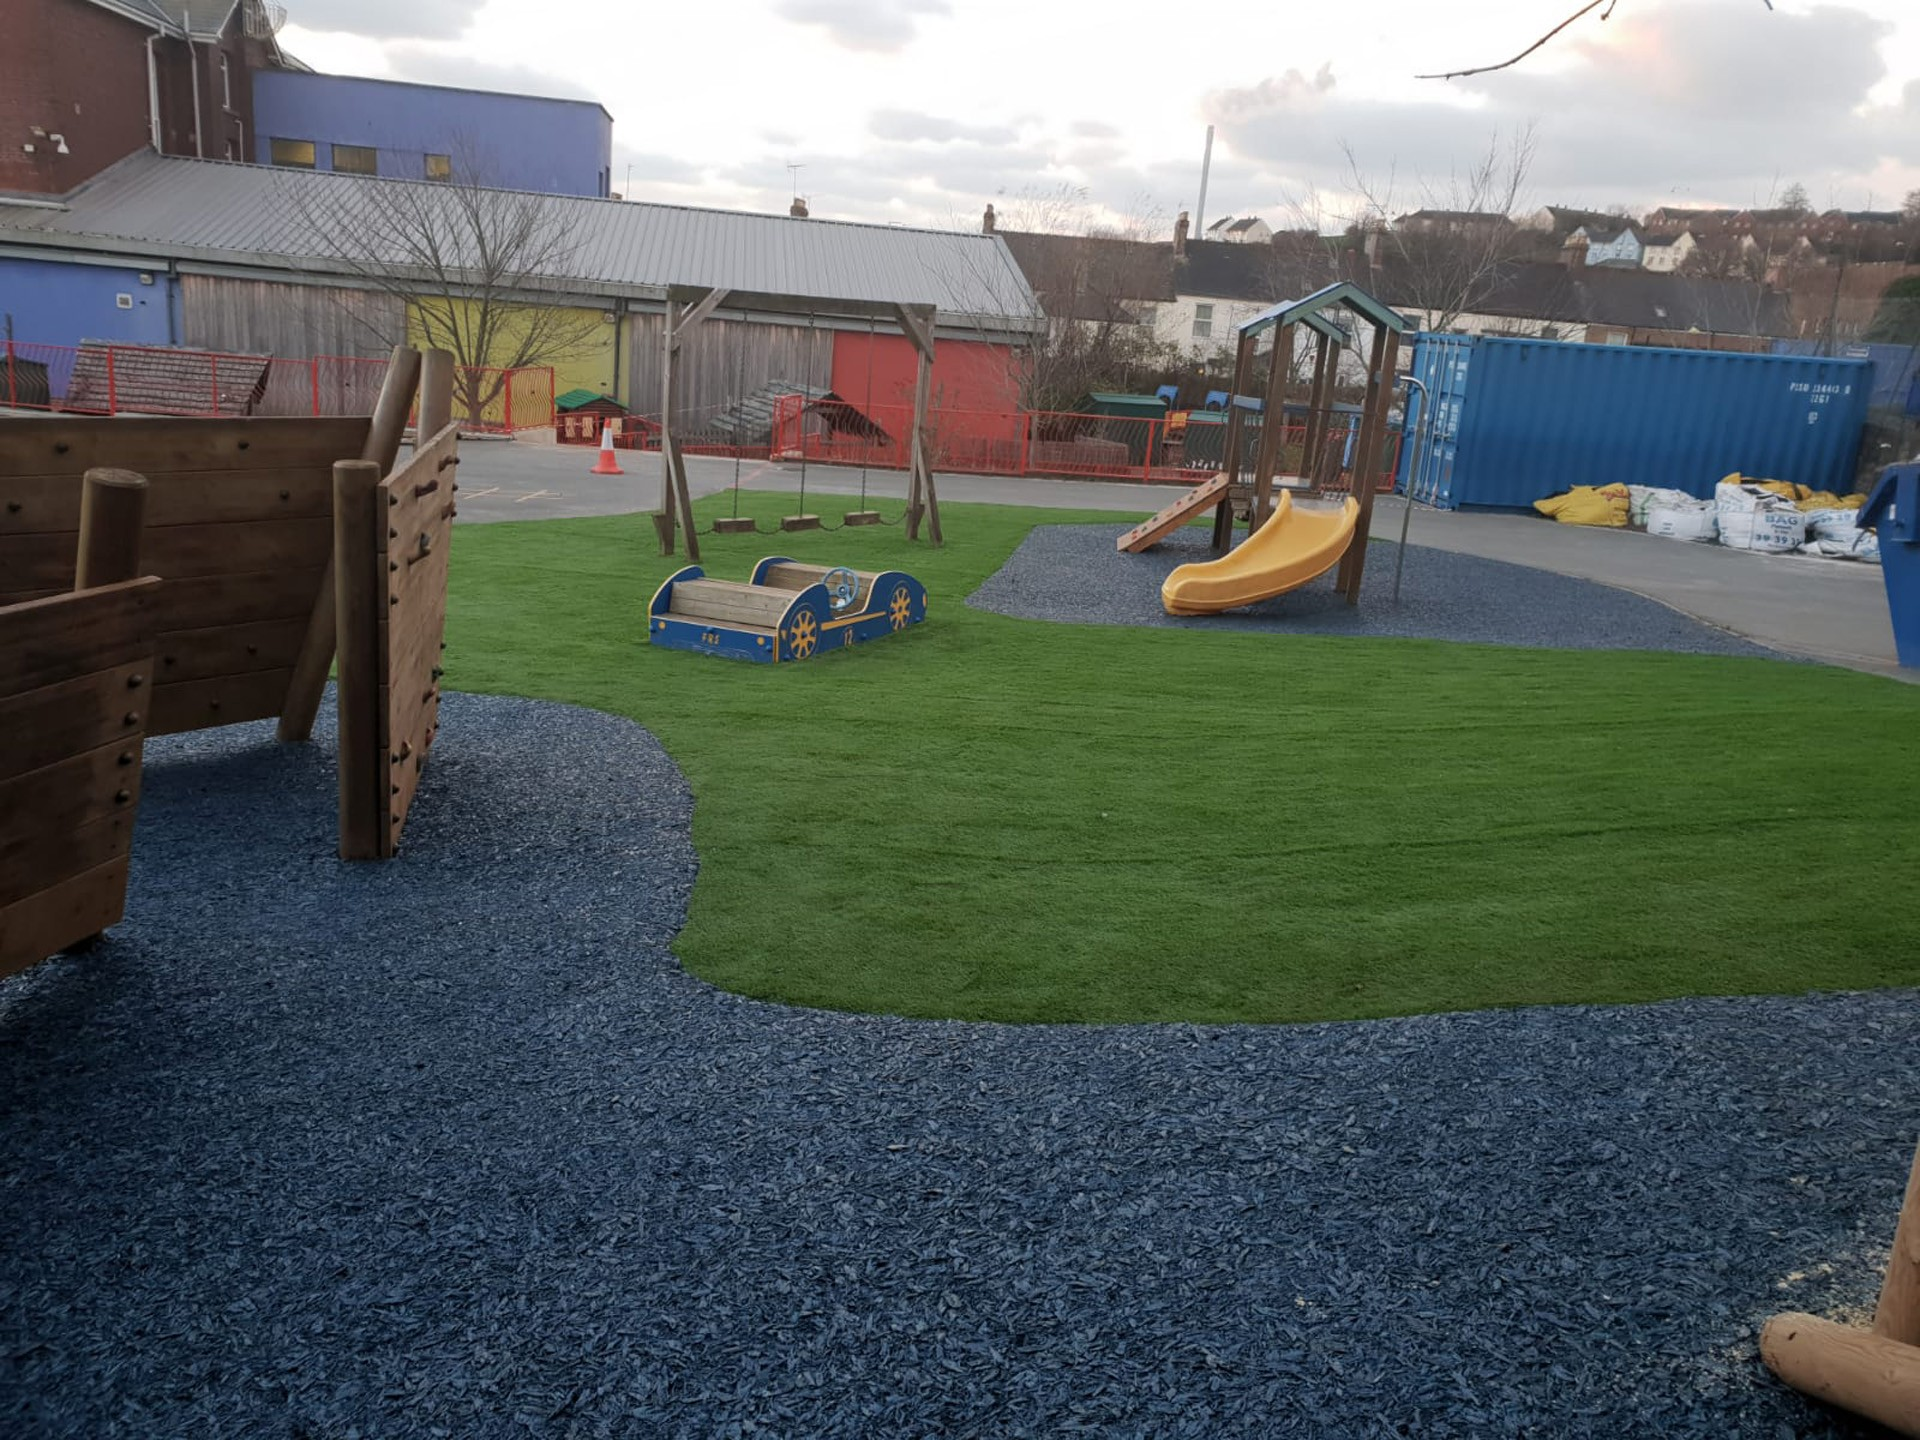 AGI Play equipment with safety mats and artificial grass